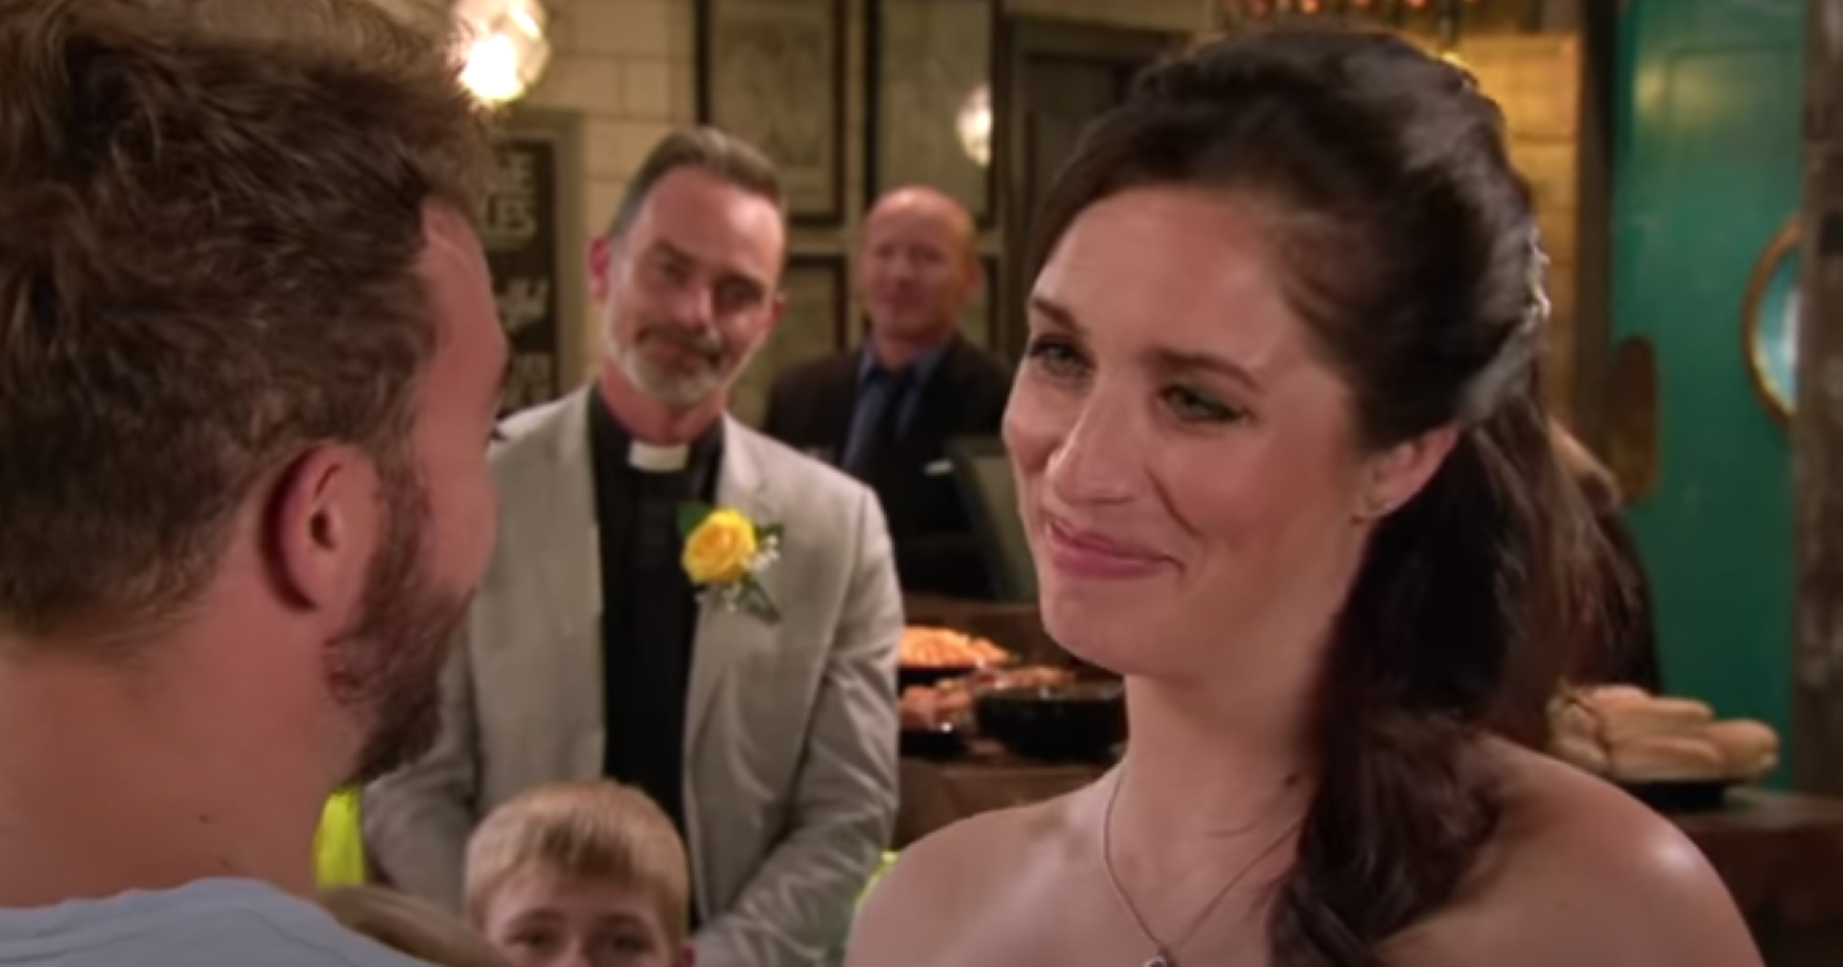 Coronation Street boss teases huge second wedding storyline for David and Shona